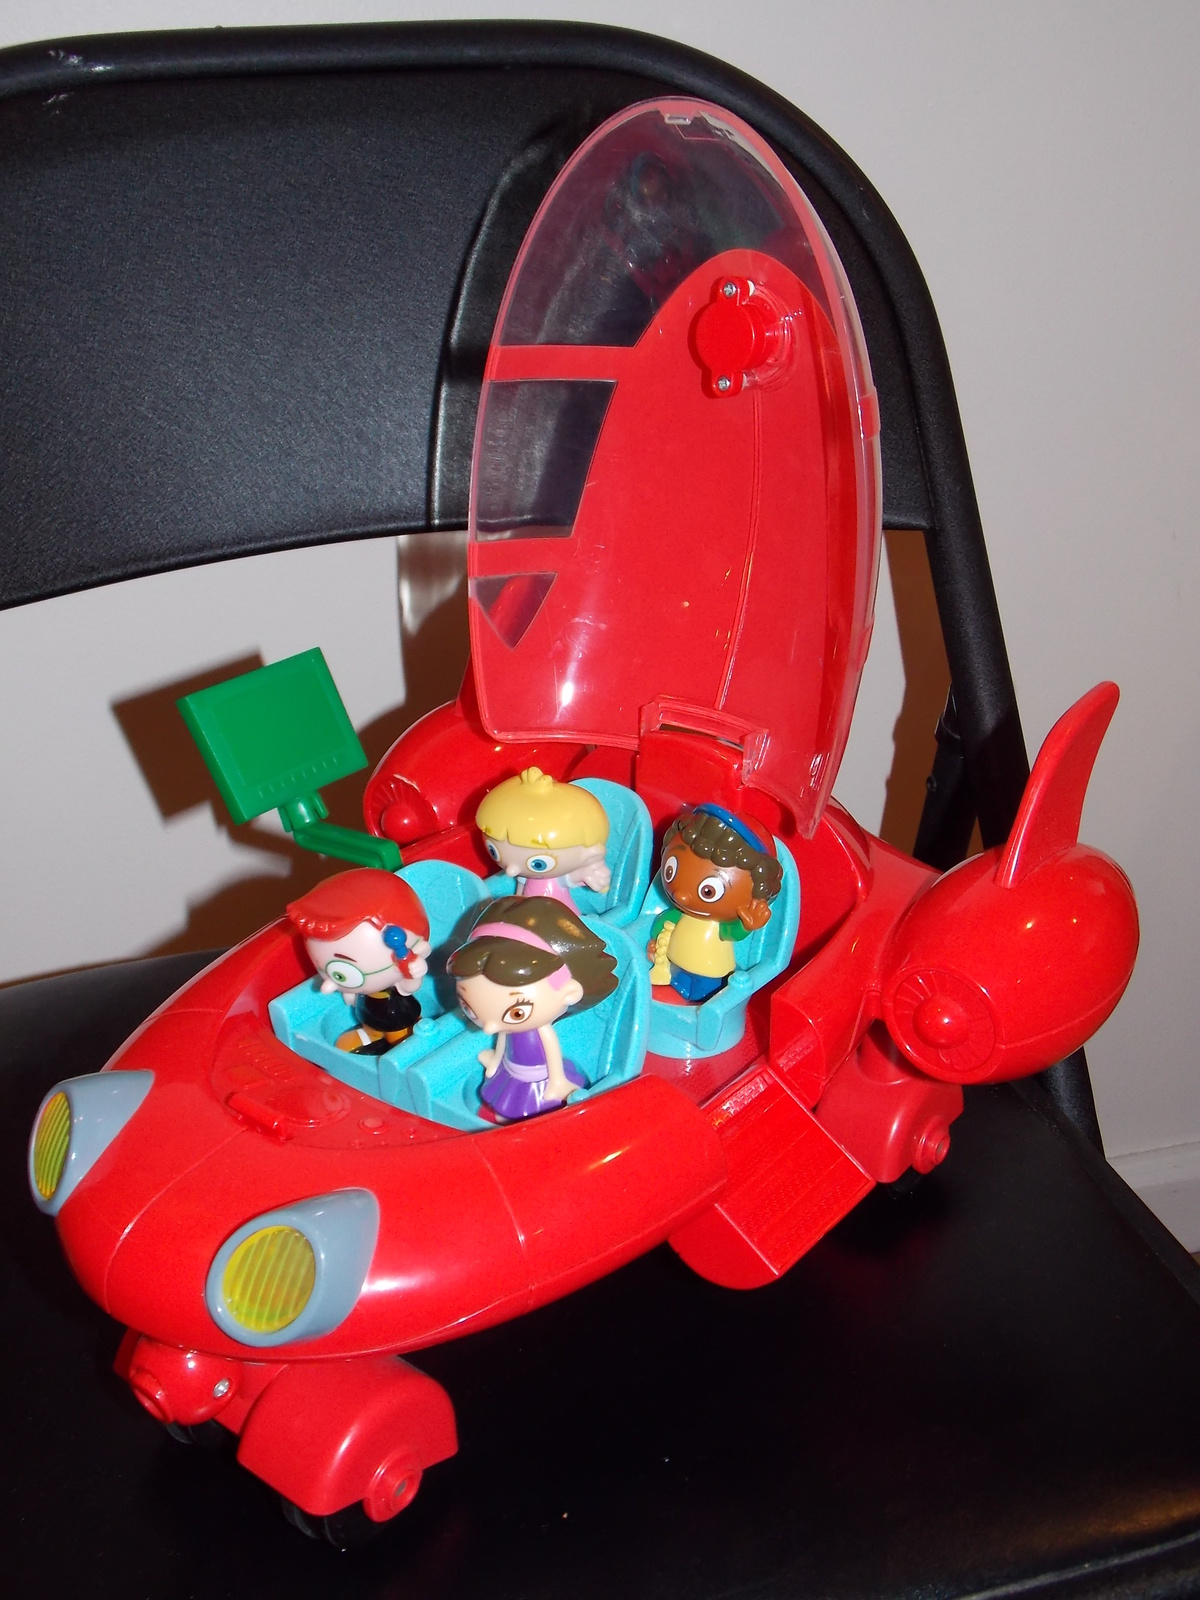 Toys For Little : Disney little einsteins rocket ship toy with and